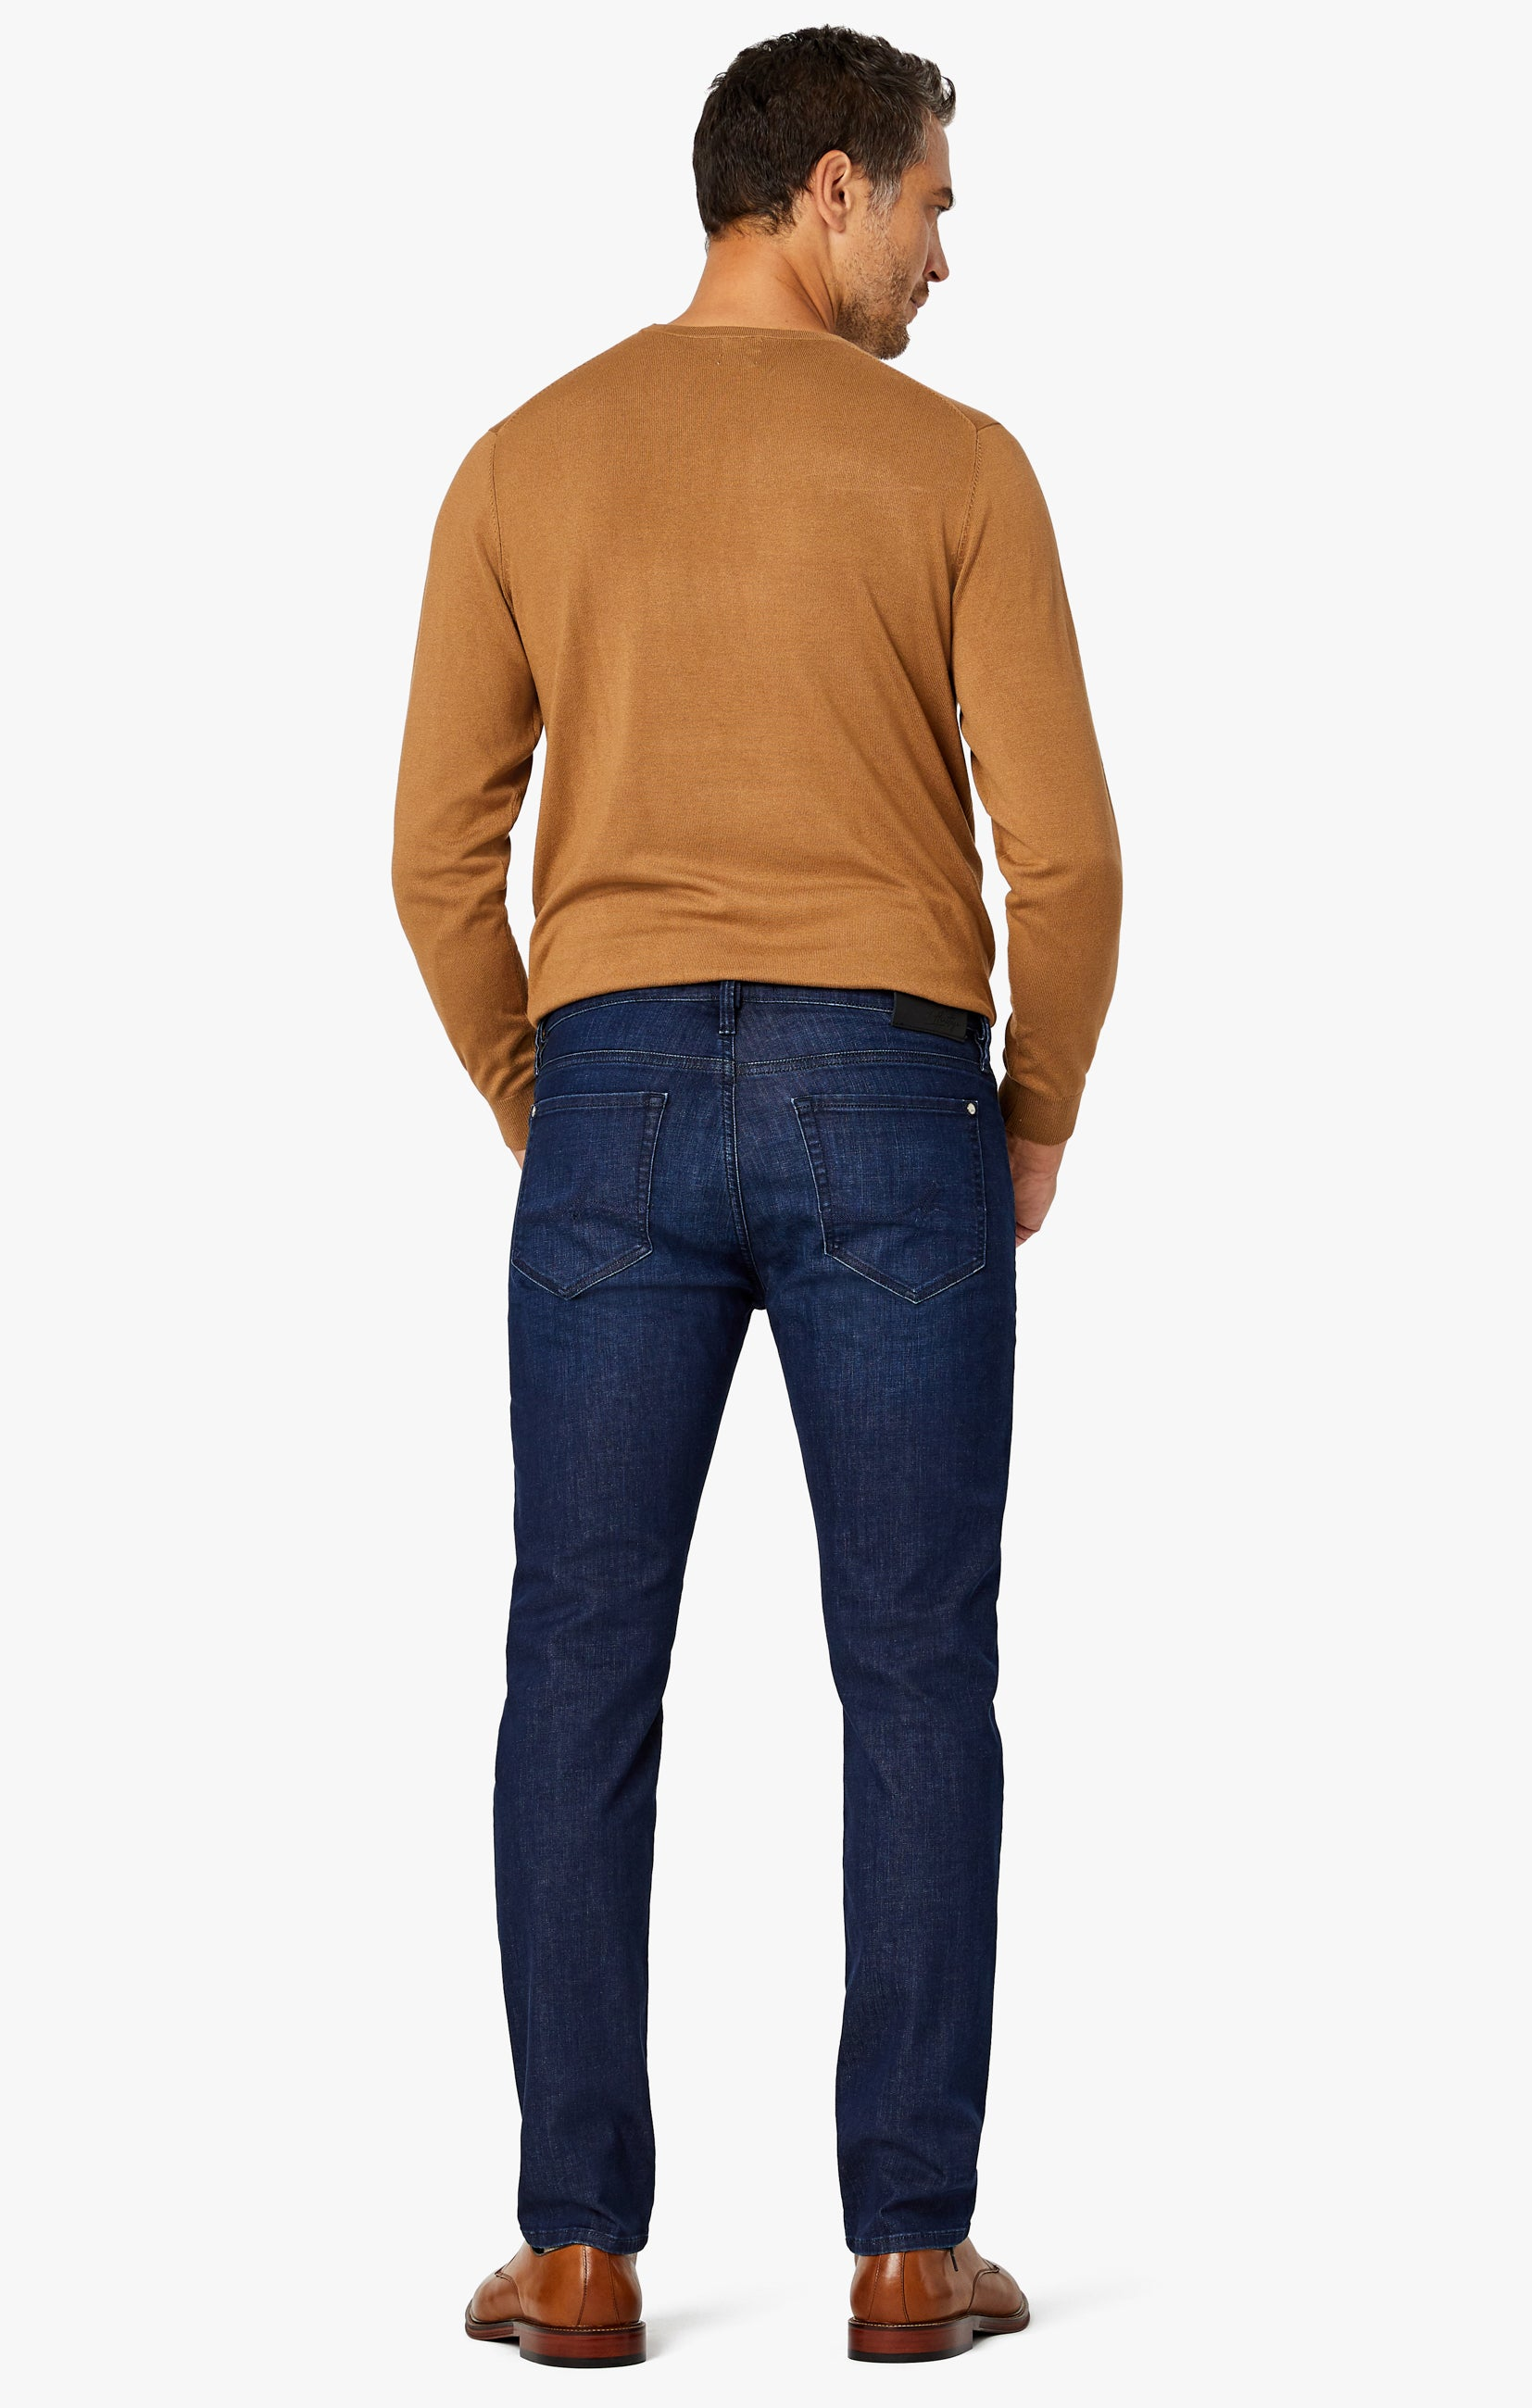 Courage Straight Leg Jeans in Deep Blue Heritage Image 9